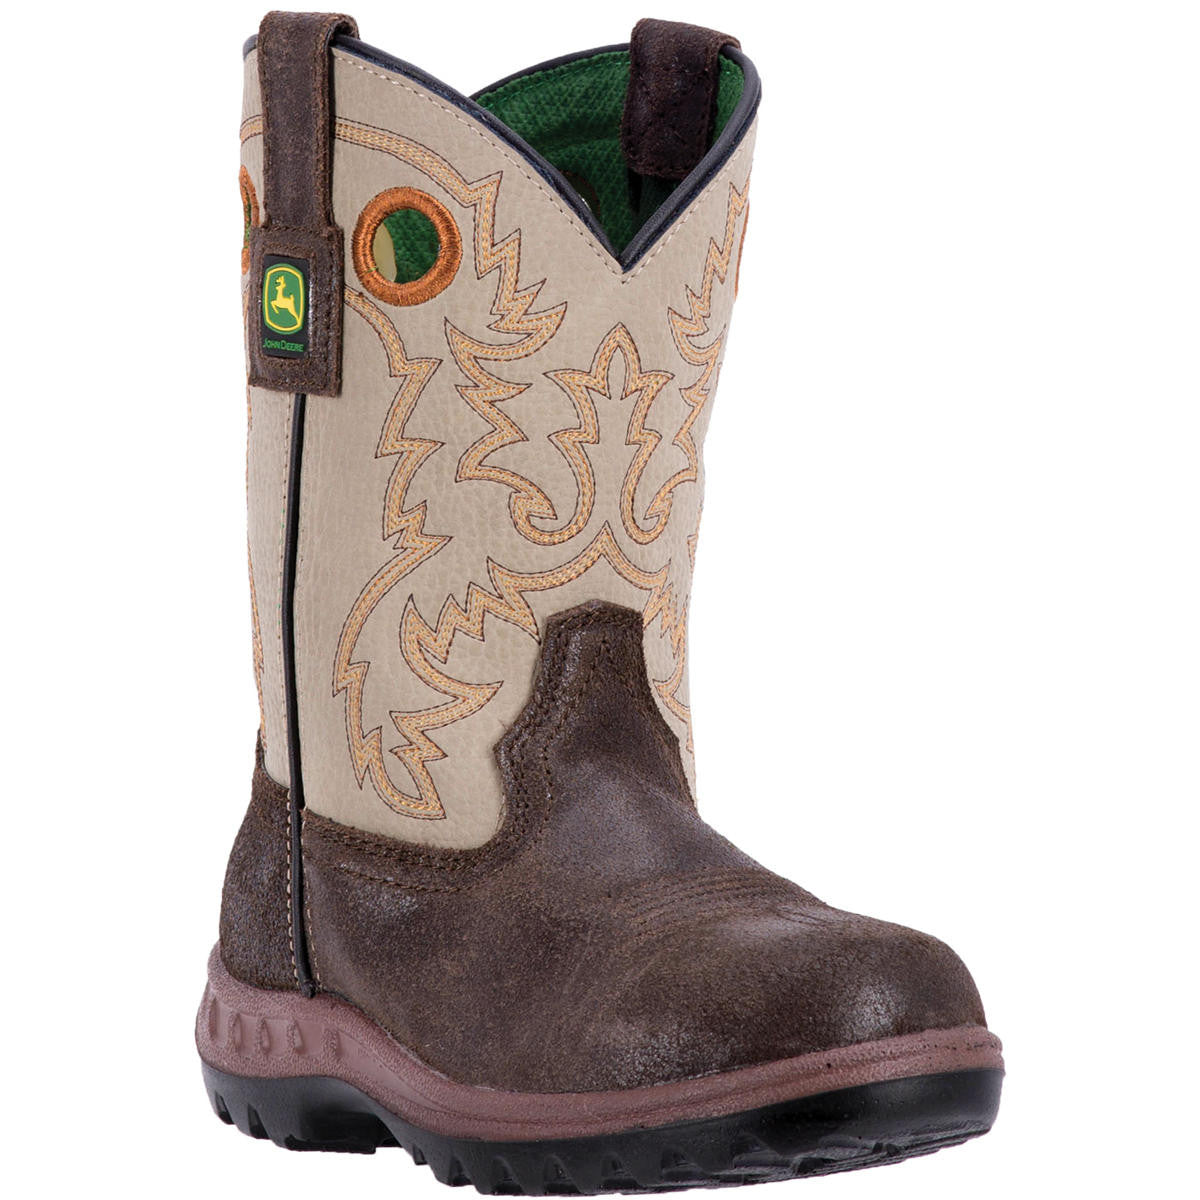 JOHN DEERE YOUTH'S  LEATHER JOHNNY POPPER YOUTH GREY